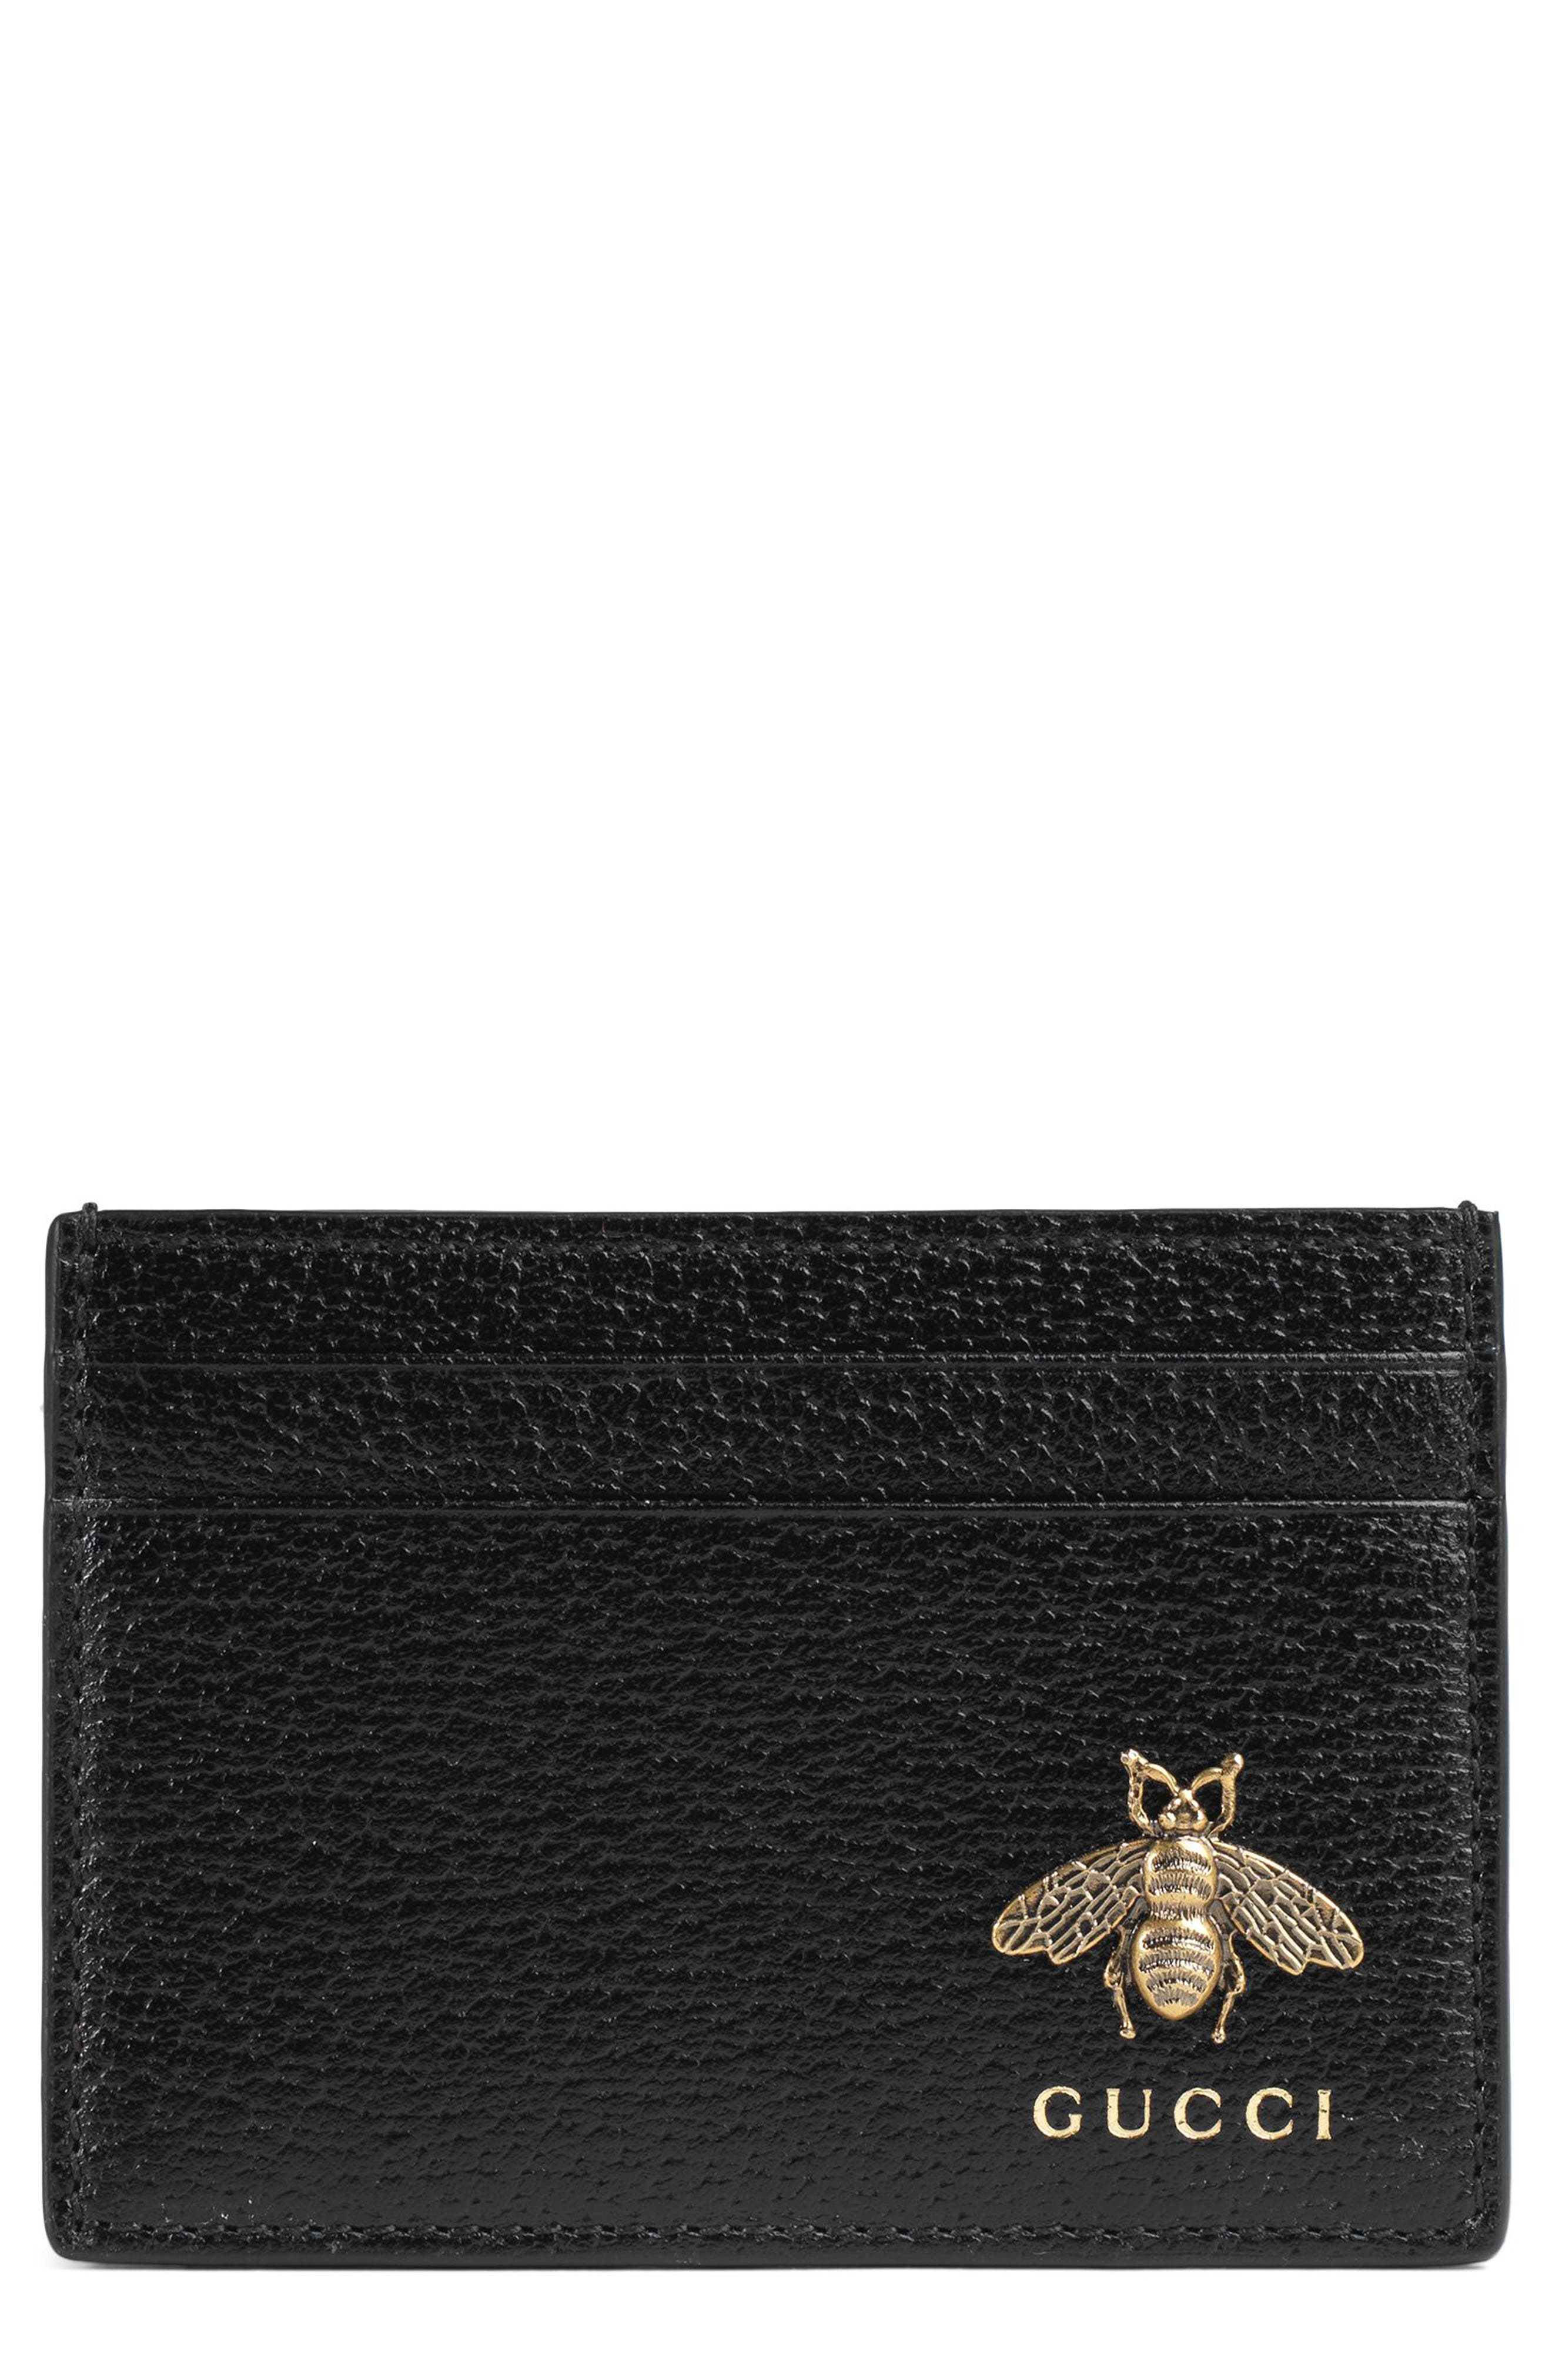 Bee Leather Card Case,                             Main thumbnail 1, color,                             001